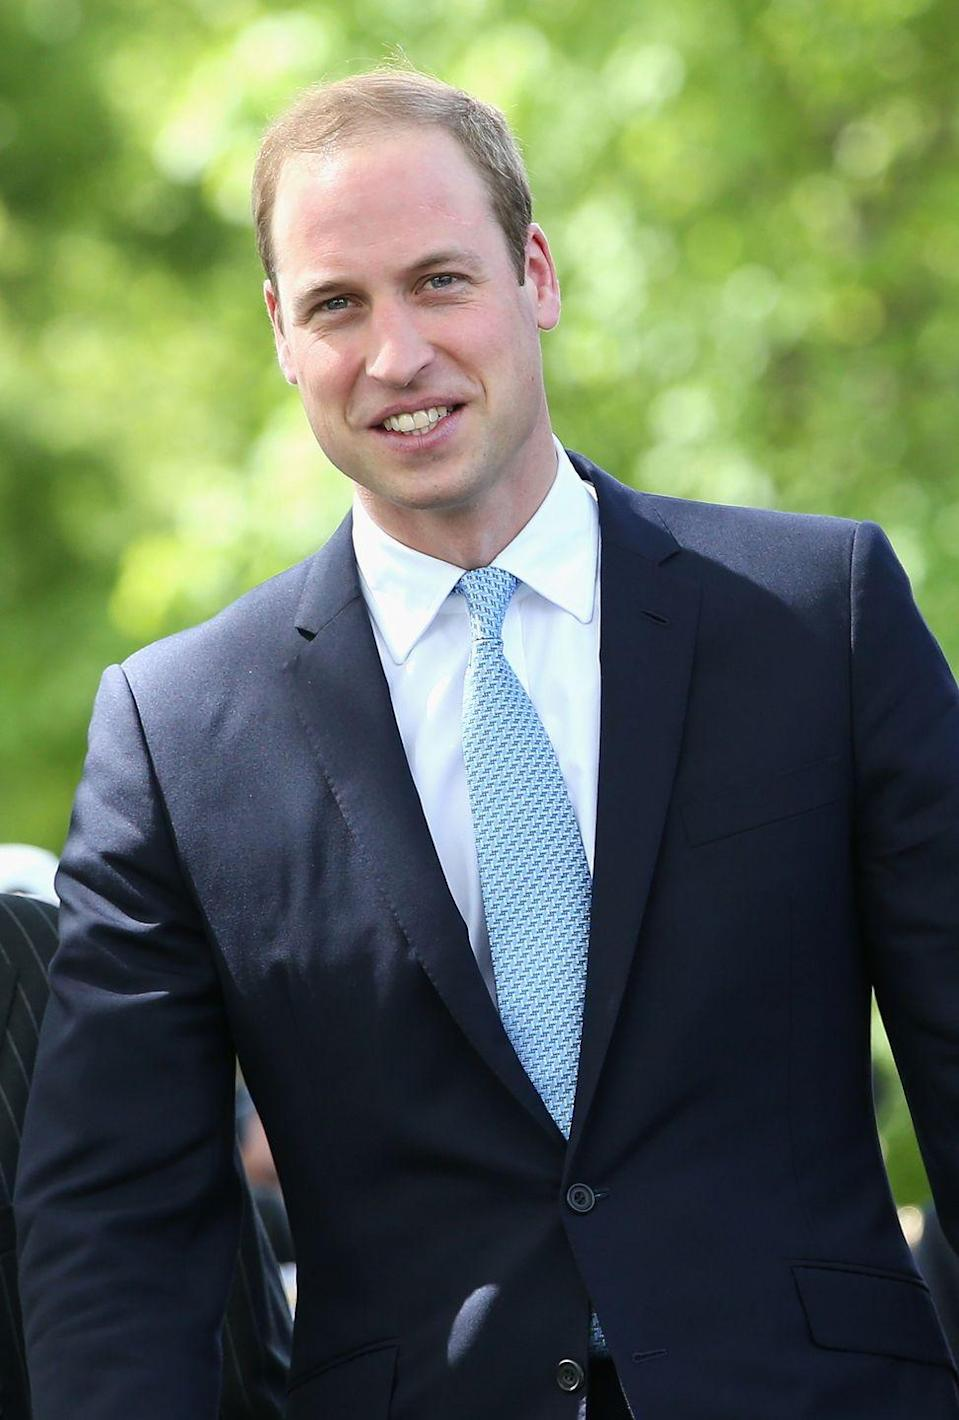 """<p>For the future King of England, he says his time in the Armed Forces impacted his mental health. """"When I started feeling issues myself, it was from my air ambulance work,"""" he <a href=""""https://www.wmagazine.com/story/prince-william-heads-together-mental-health-initiative-celebrities/"""" rel=""""nofollow noopener"""" target=""""_blank"""" data-ylk=""""slk:revealed"""" class=""""link rapid-noclick-resp"""">revealed</a> at a Heads Together event in 2019. """"I was dealing with a lot of trauma on a day in, day out basis, stuff that your body is not programmed to deal with, there's just no way it is."""" William added, """"For some reason, we're all embarrassed by emotions—British people, particularly—we're very embarrassed by revealing our emotions.""""</p>"""